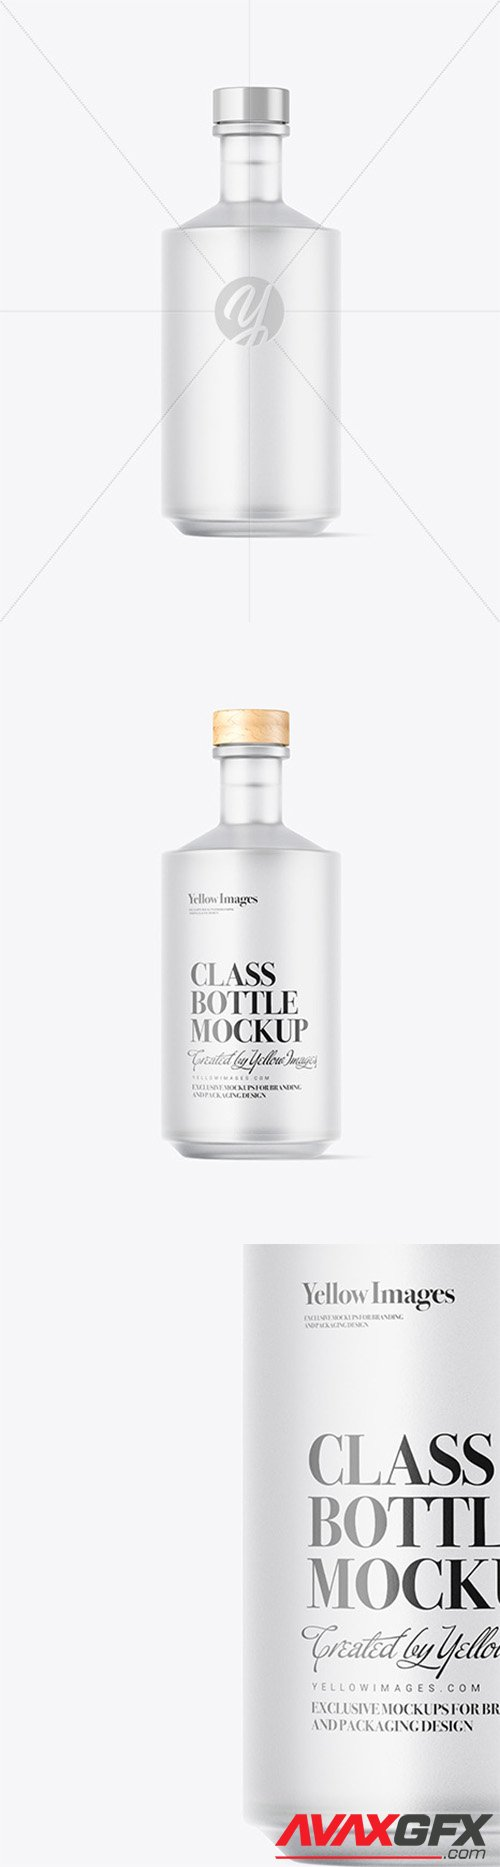 Download Glass Engraving Mockup Download Free And Premium Psd Mockup Templates And Design Assets PSD Mockup Templates